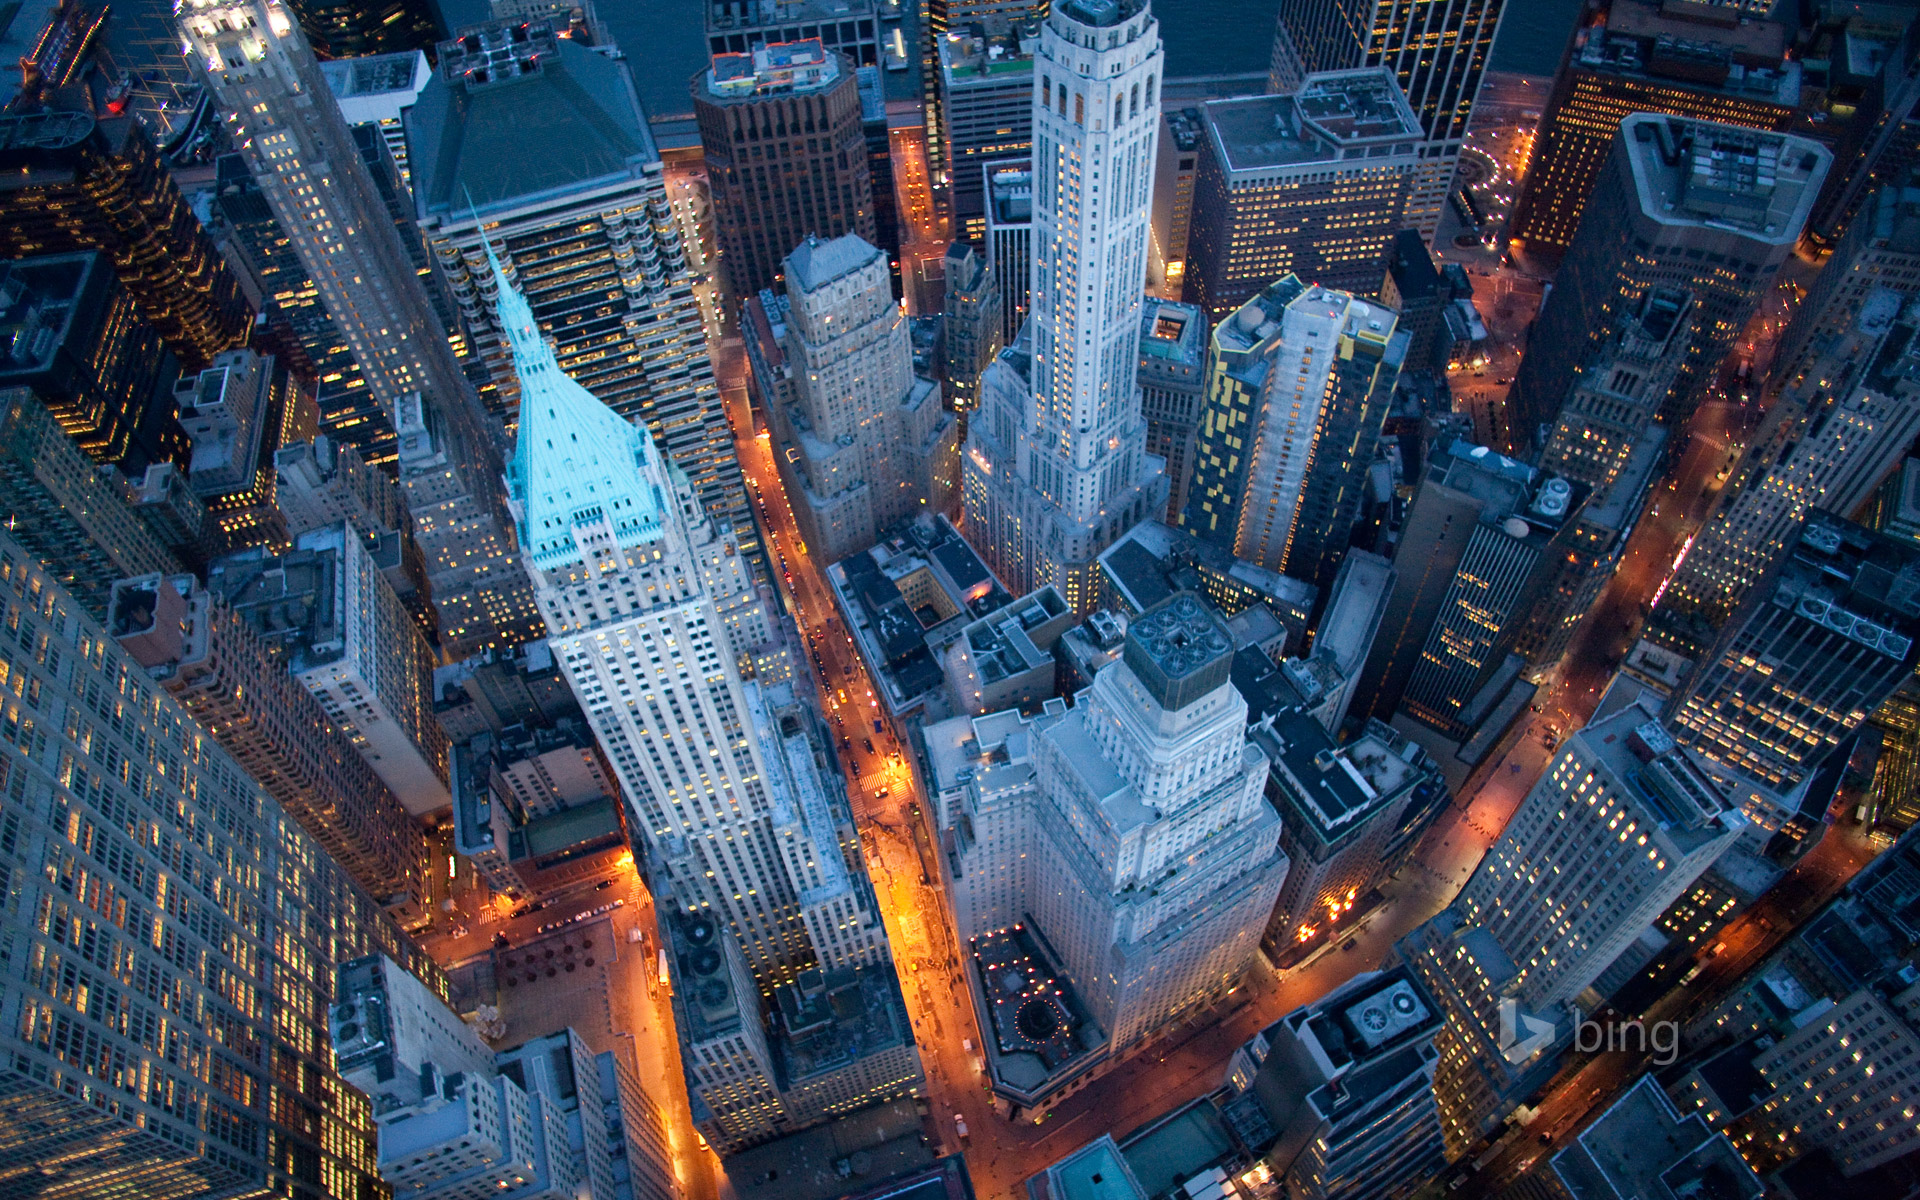 Aerial view of Wall Street, New York City